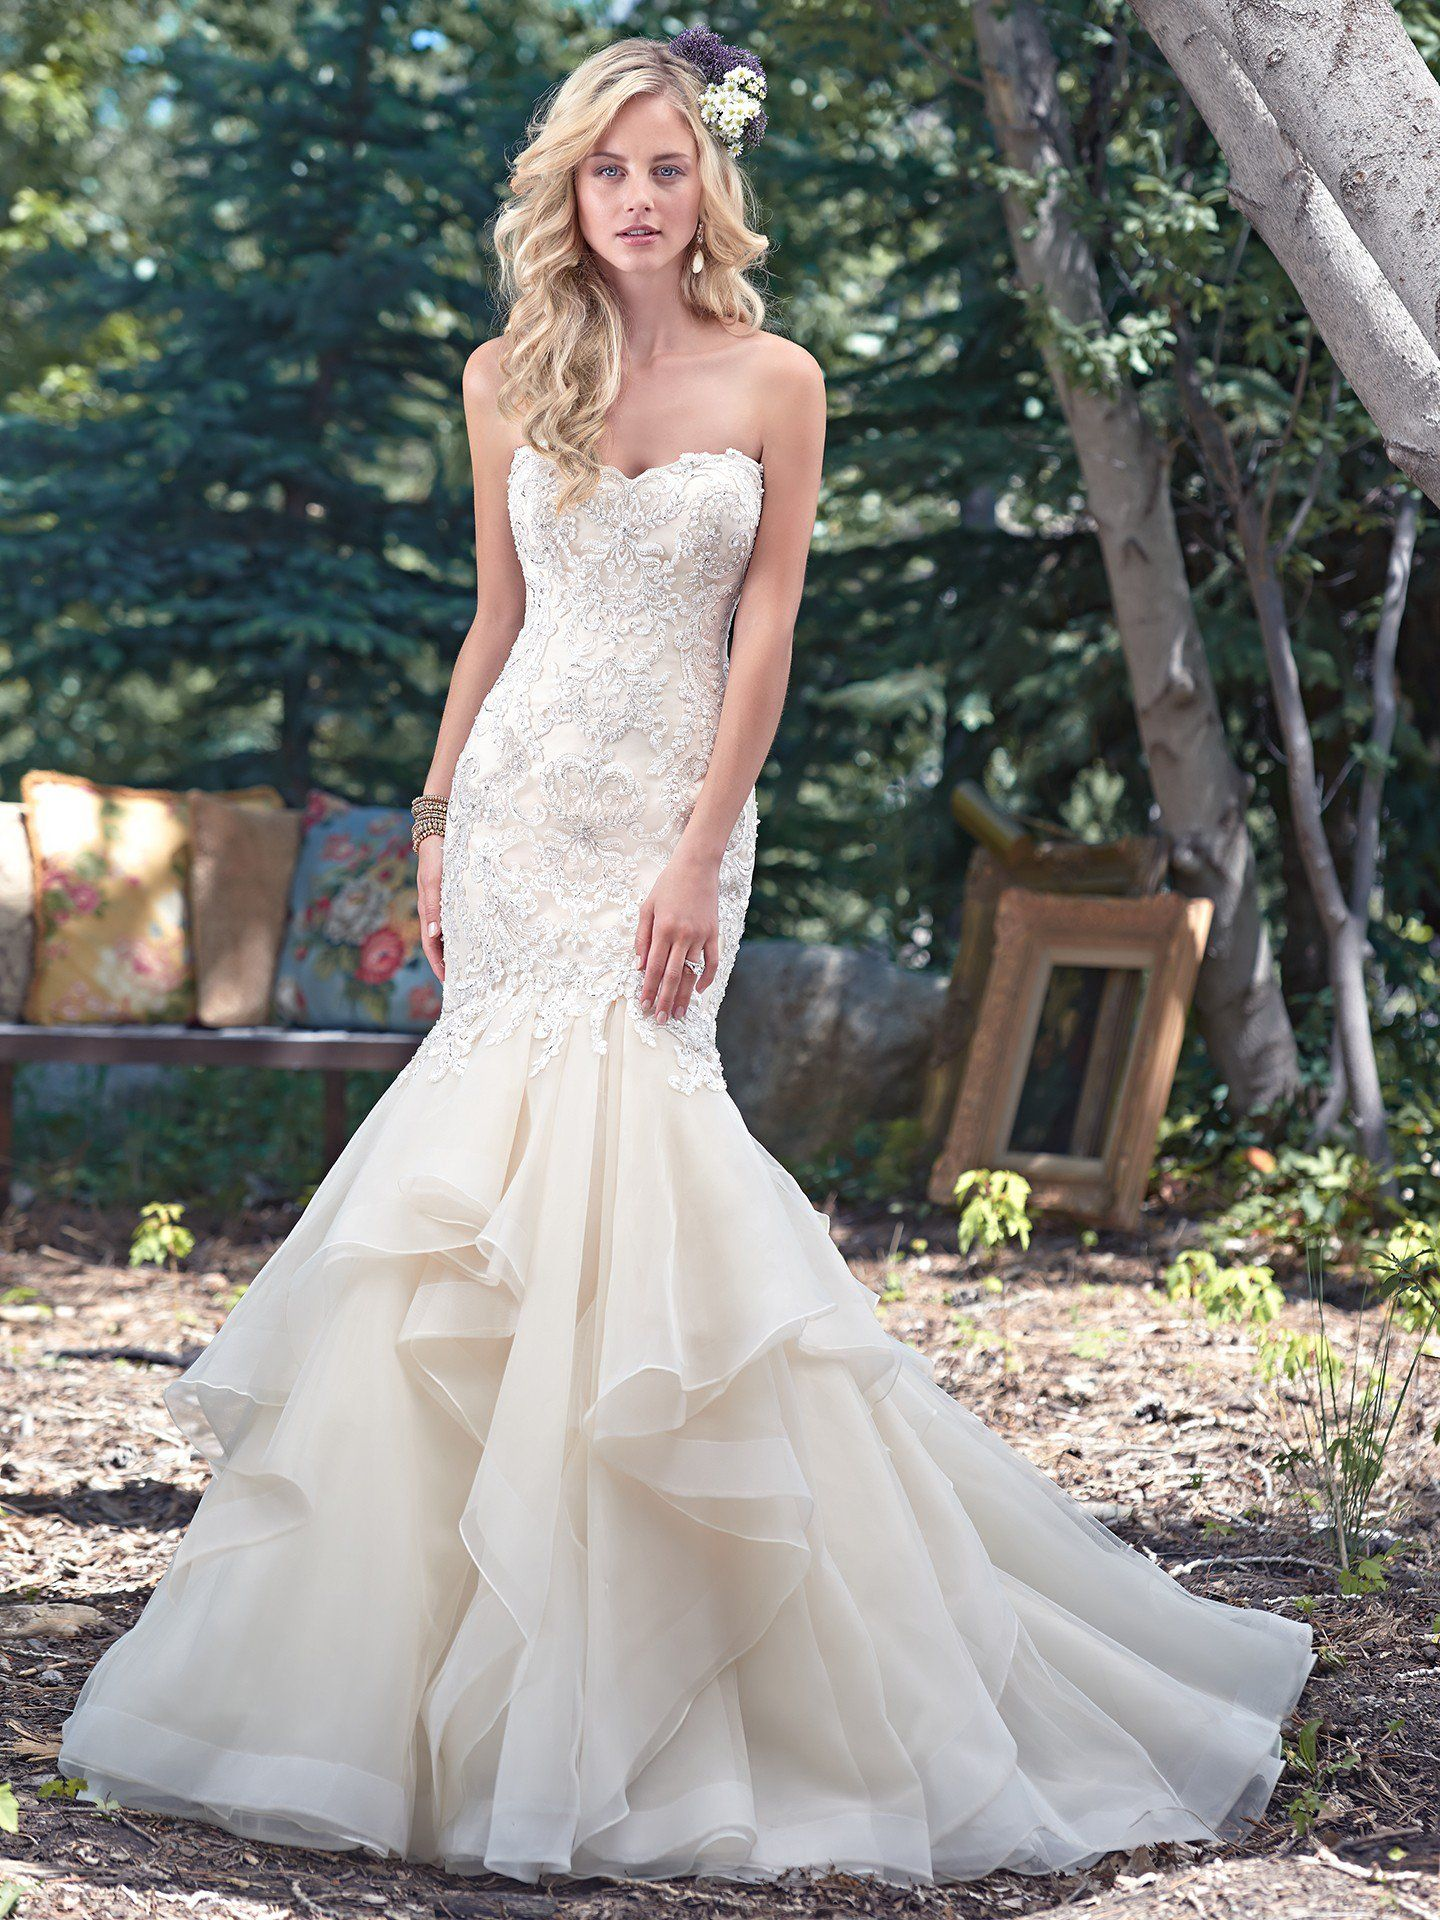 Understated drama is found in this fit and flare wedding dress with a  stunning fitted lace bodice d1b4fa636c3e